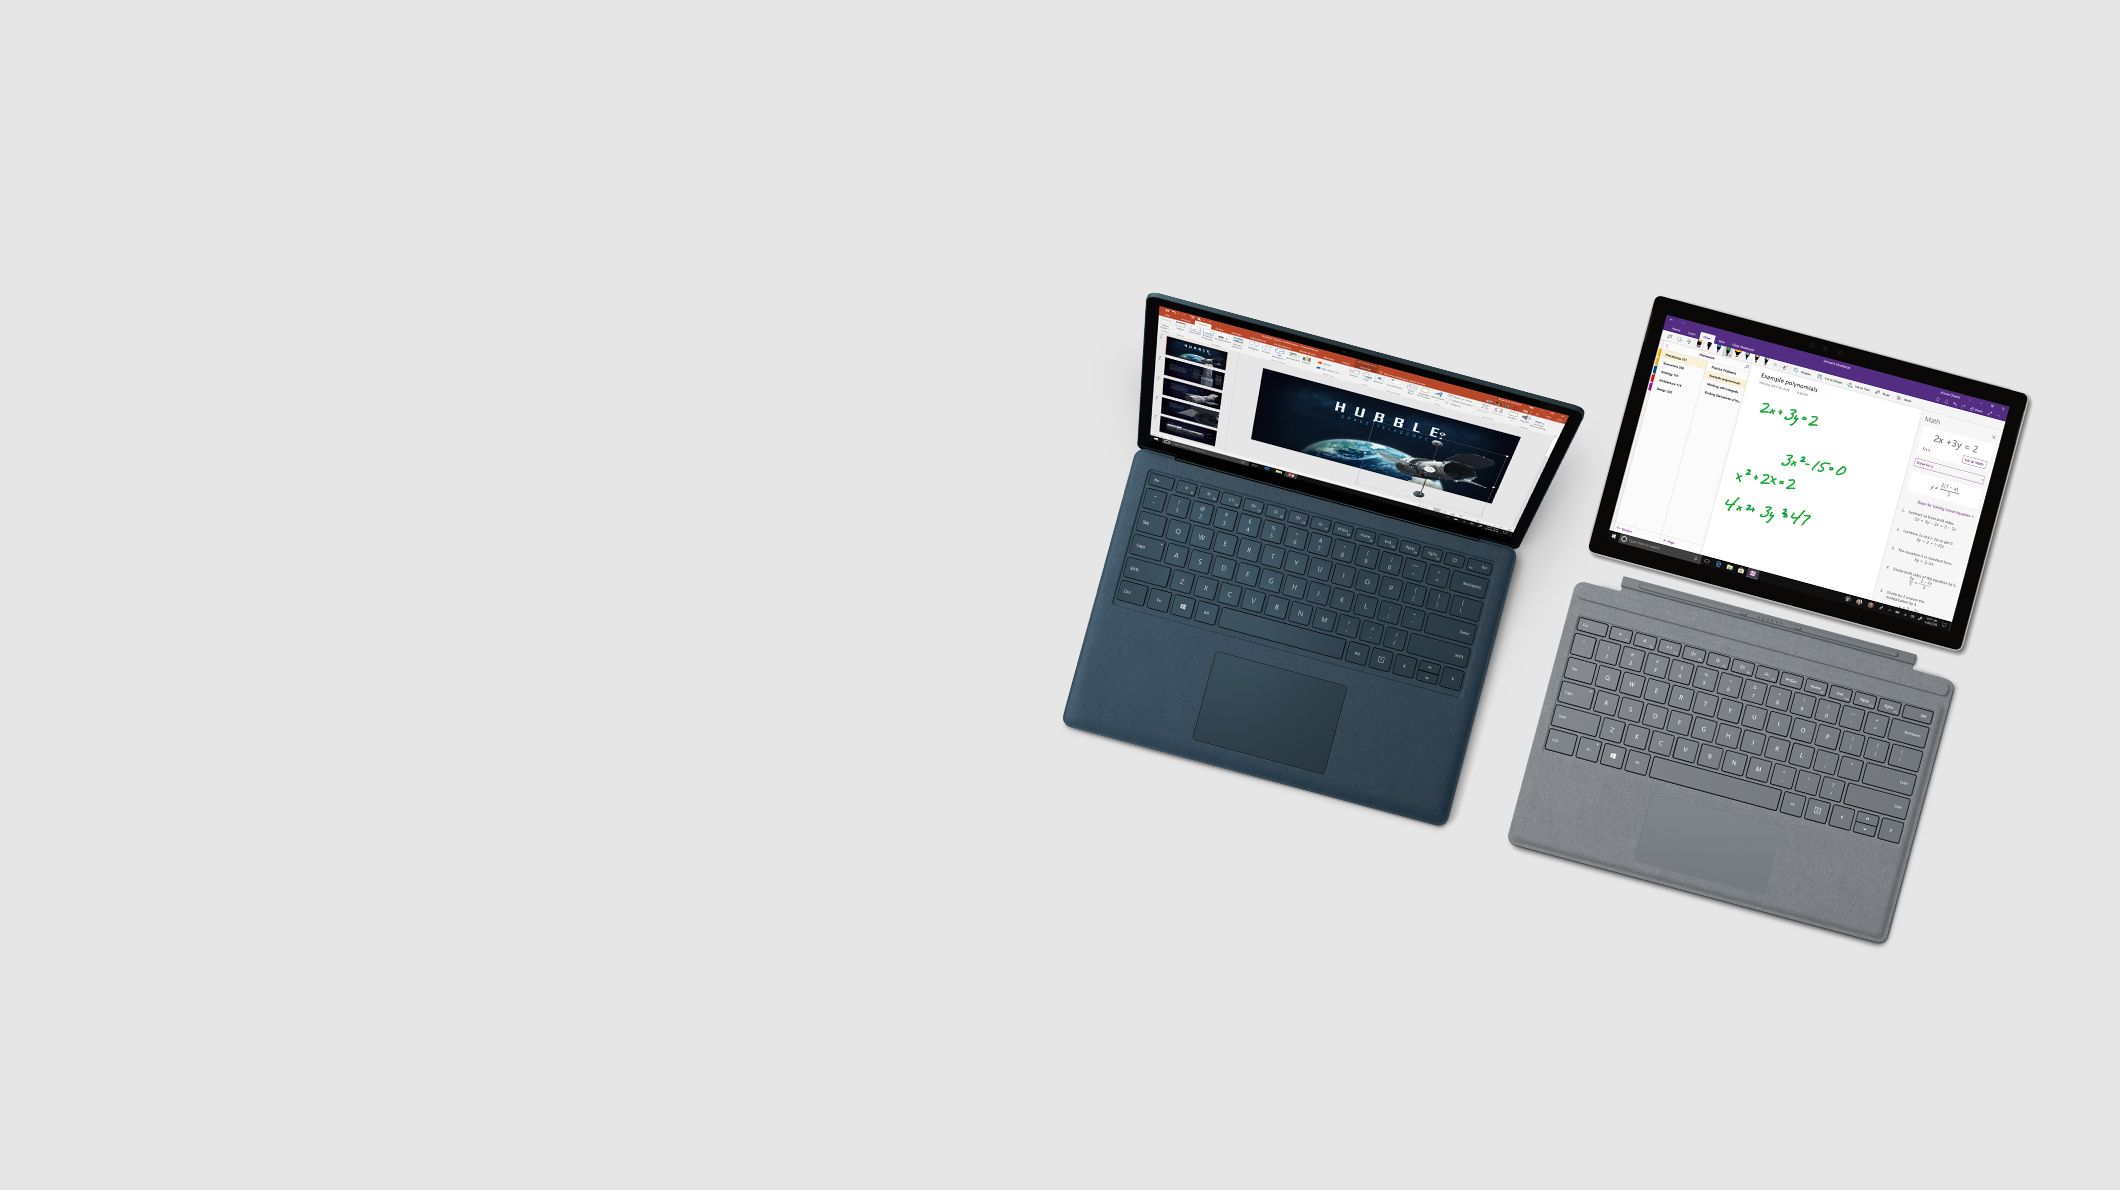 A Surface Laptop and a Surface Pro with education-focused screens